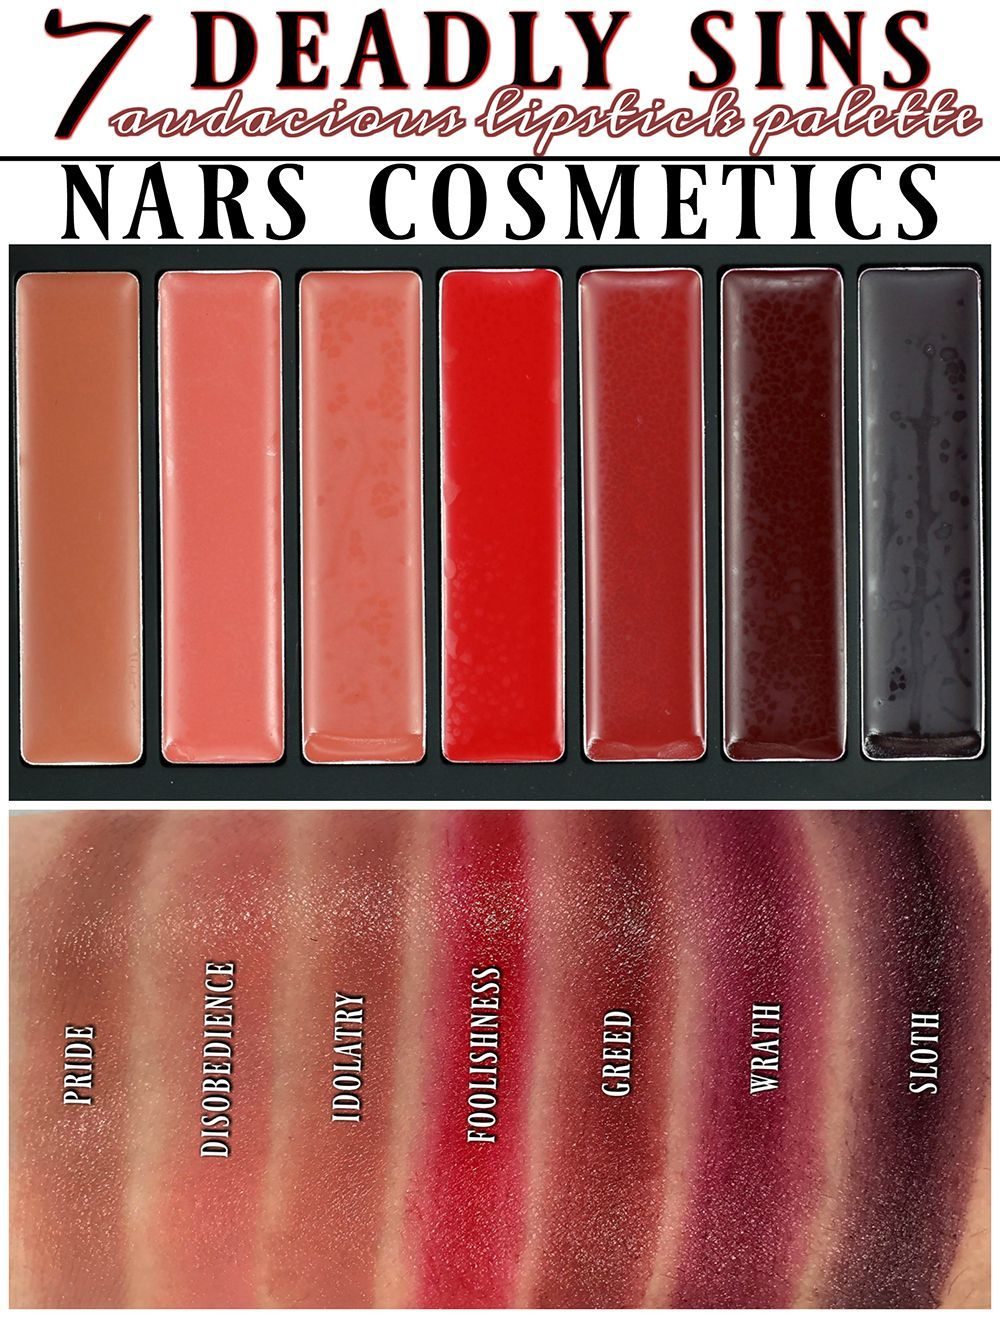 Nars 7 Deadly Sins Audacious Lipstick Palette Swatches Review